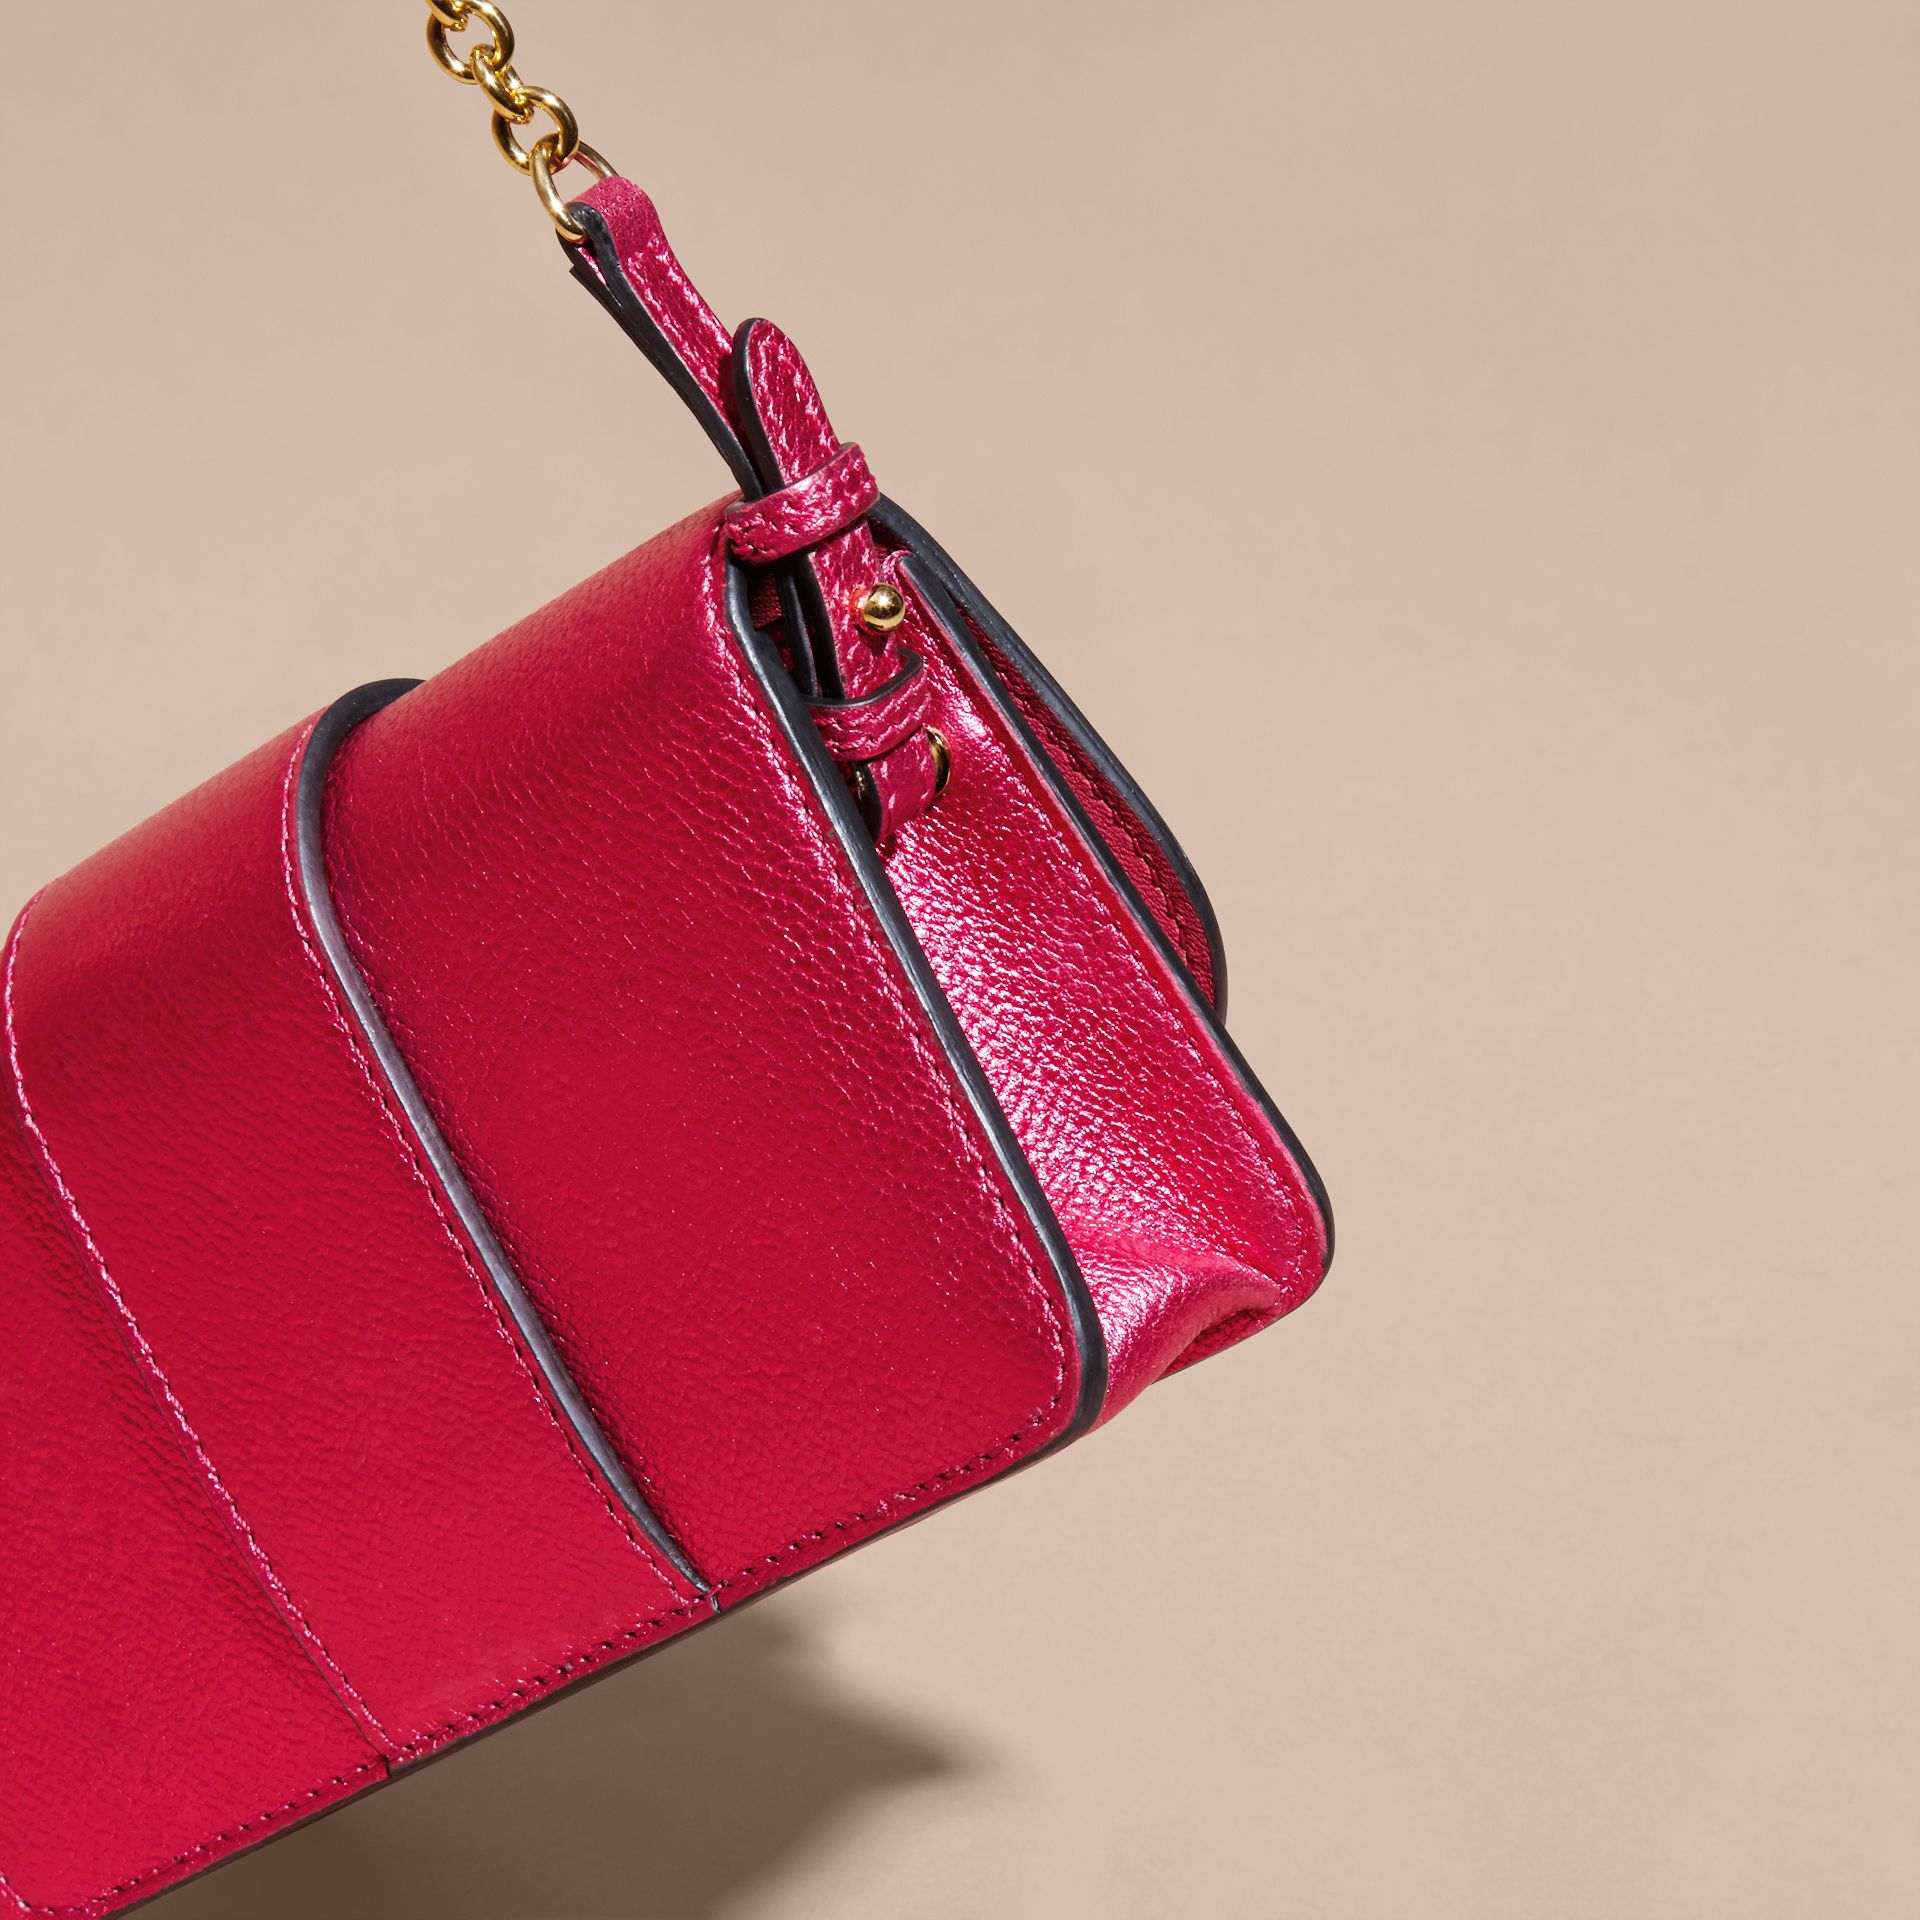 The Mini Buckle Bag in Metallic Grainy Leather in Bright Pink - gallery image 8